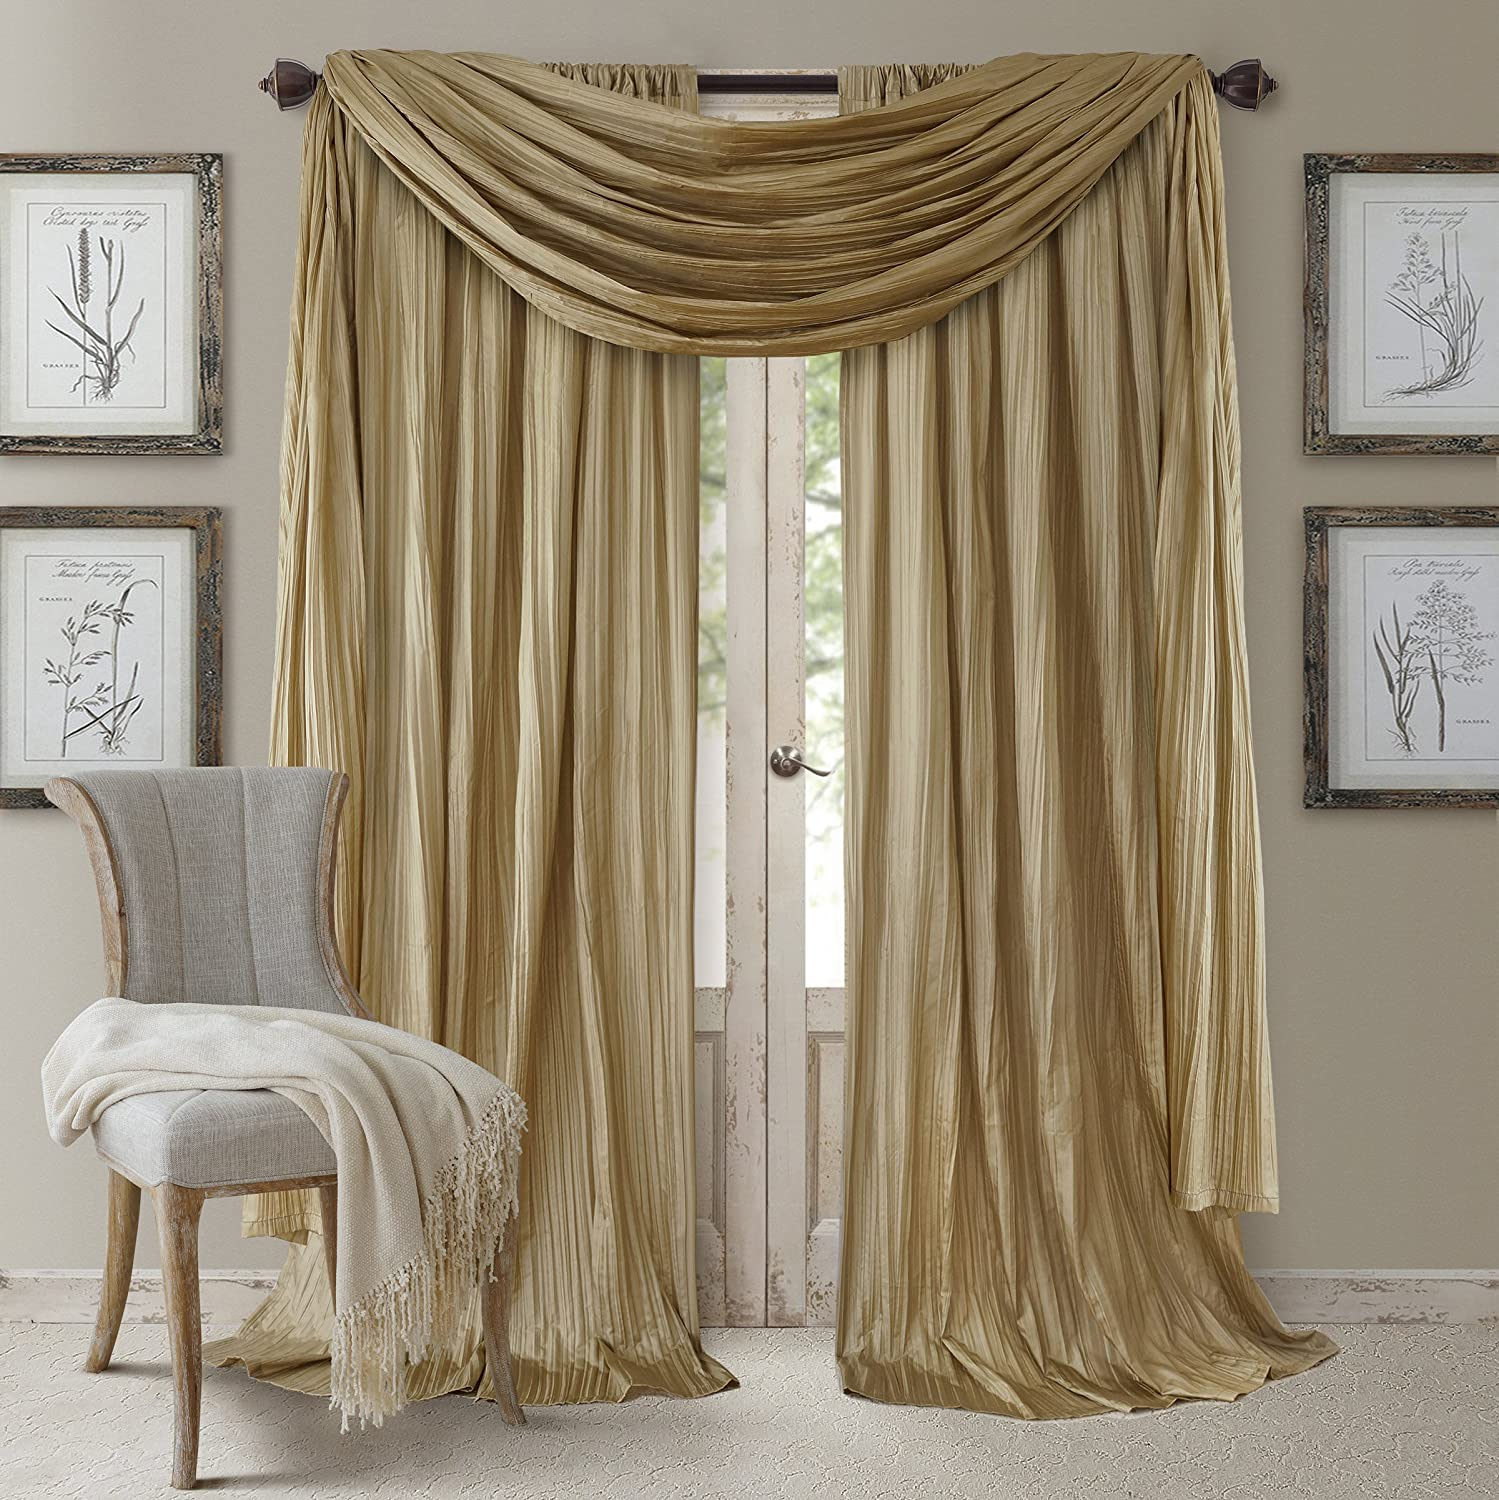 "Elrene Home Fashions Venice Curtain Panels with Scarf Valance - Set of 3 - Panel 52"" W x 108"" L, Scarf 52"" W x 216"" L, Gold (2 panels - 1 scarf)"